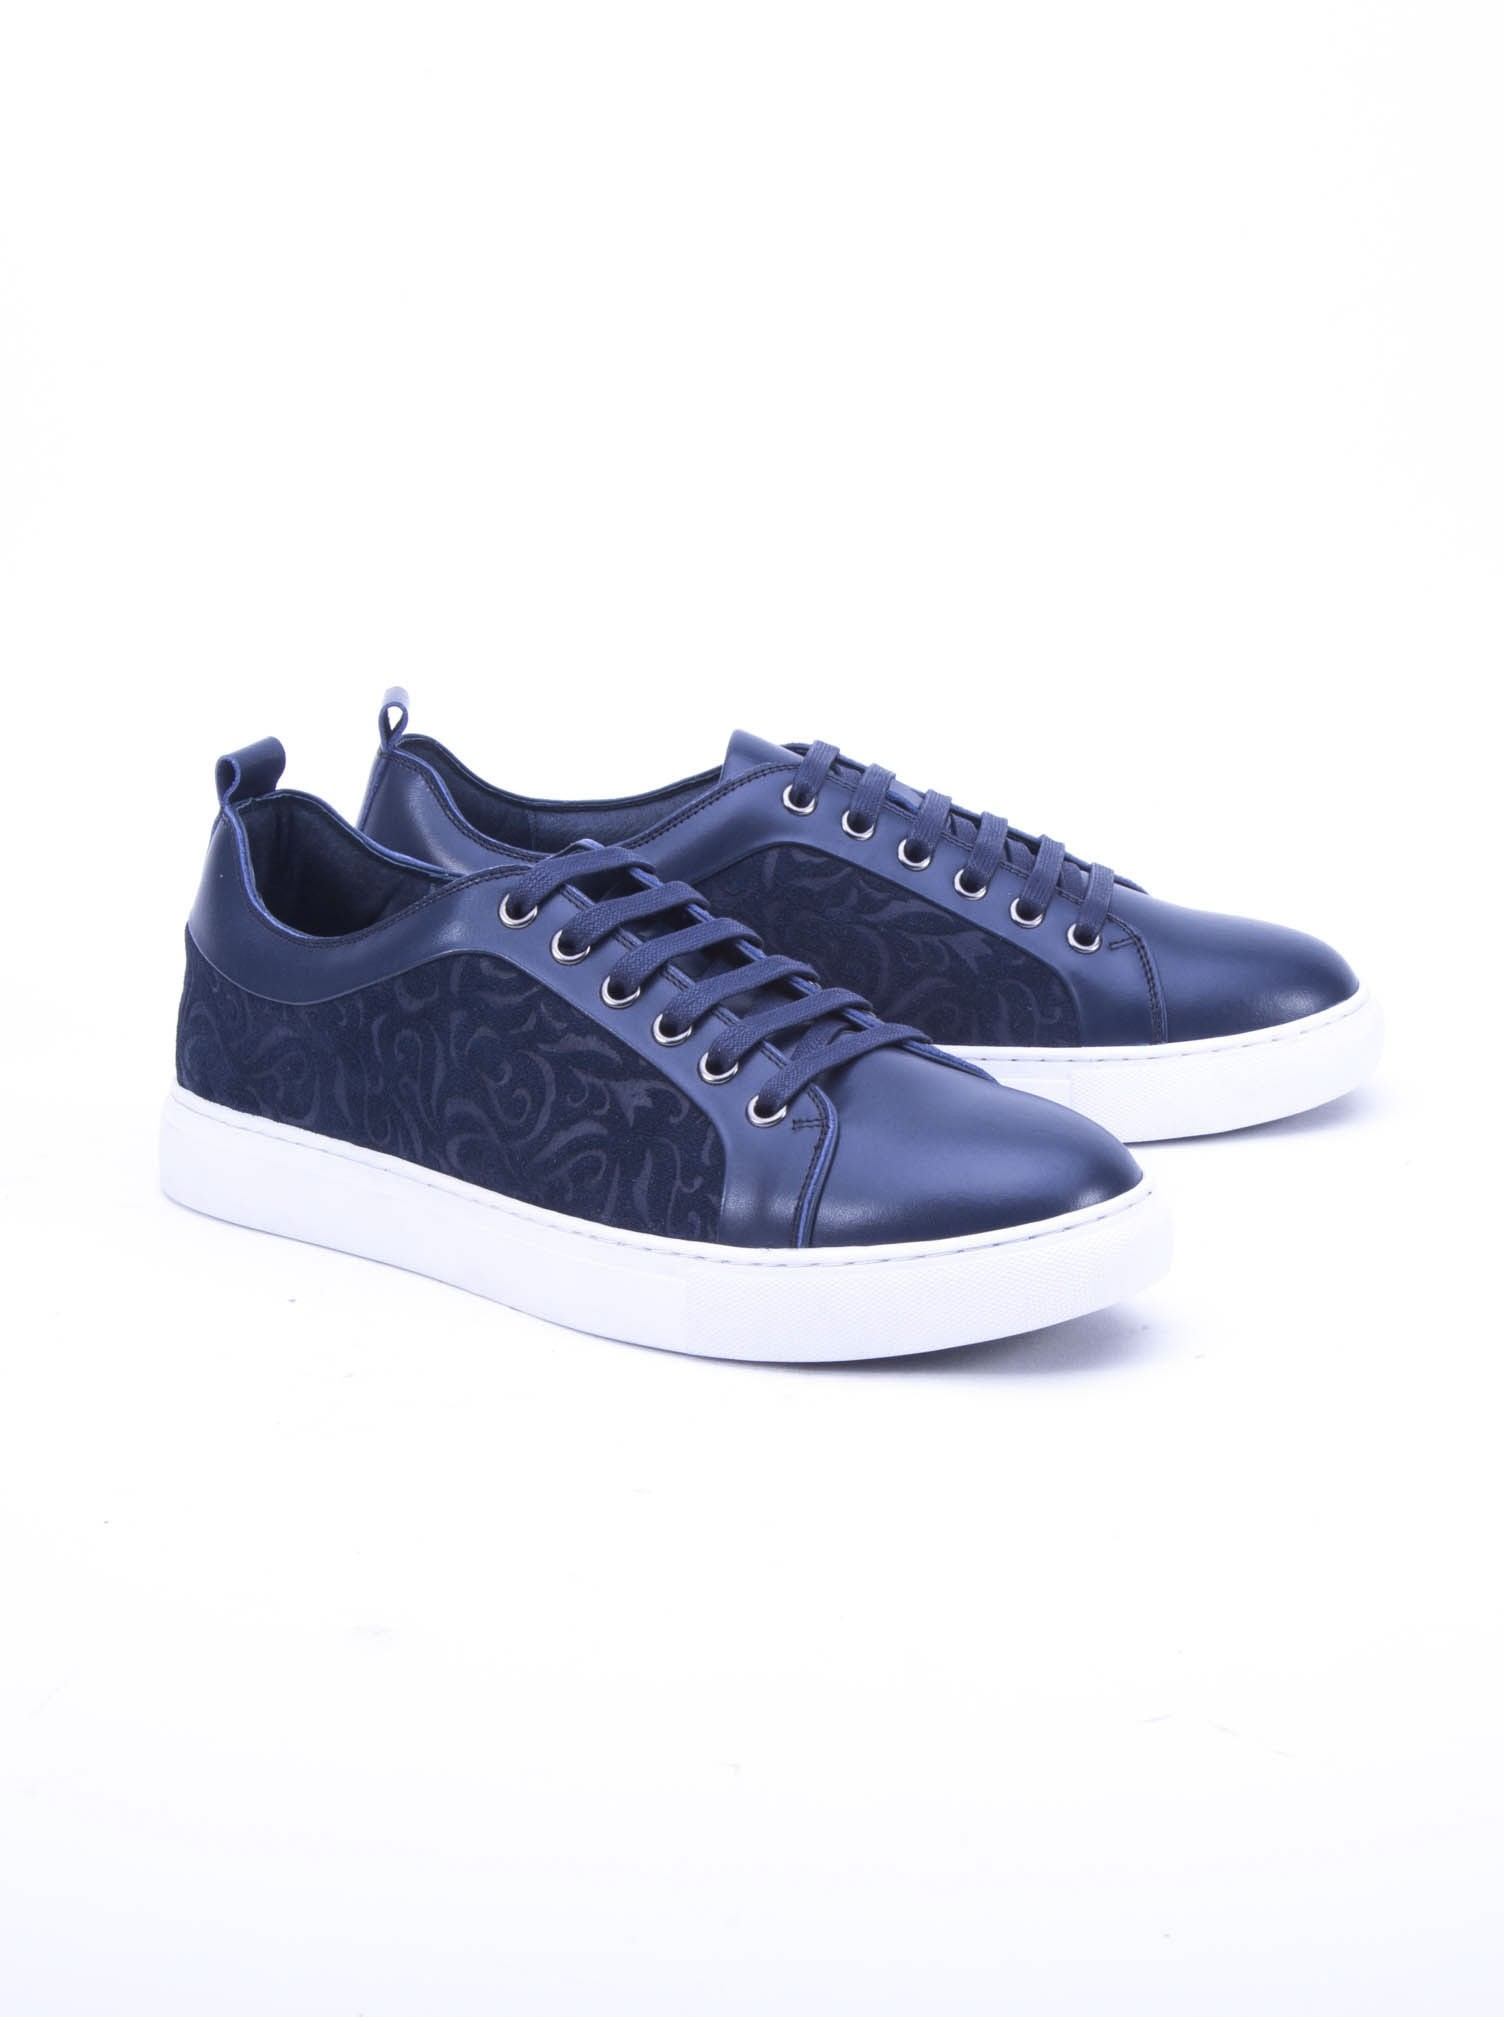 Robert Graham Creed Leather Sneaker Navy